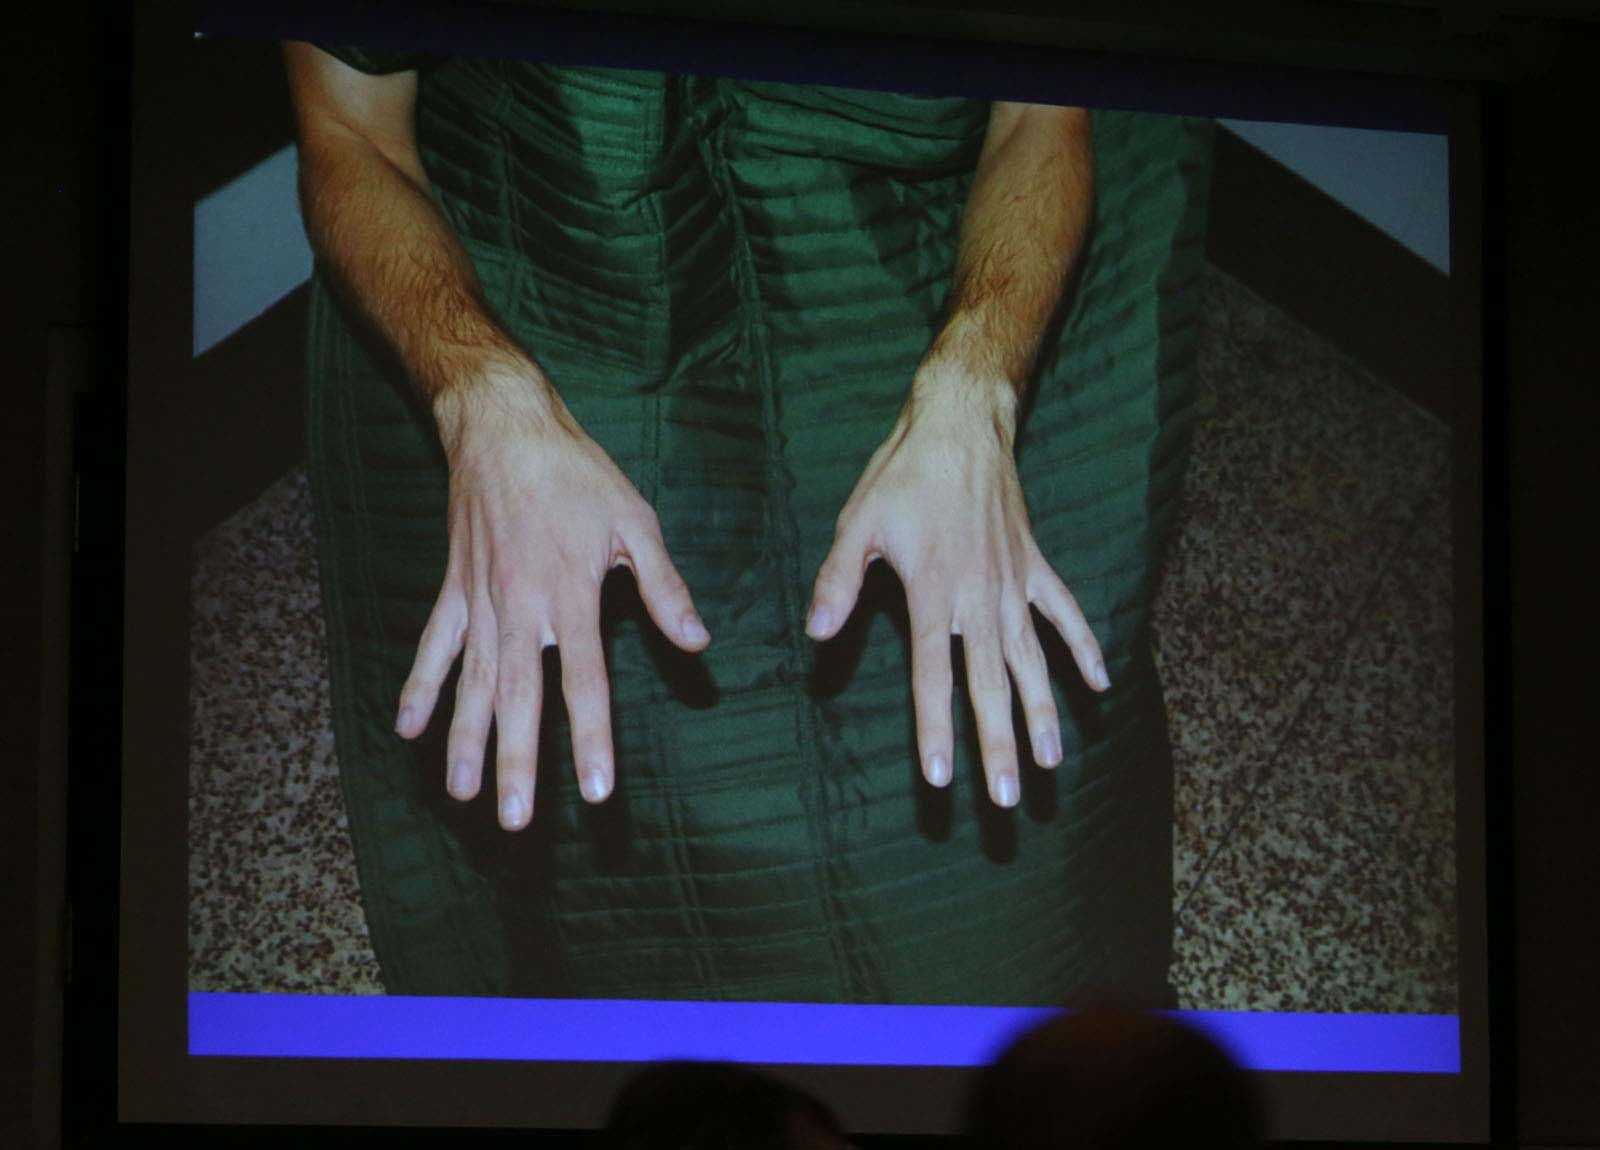 The prosecution shows a jail photo of Pedro Bravo's hands as part of their closing statement during Pedro Bravo's murder trial in courtroom 1B of the Alachua County Criminal Justice Center Friday, August 15, 2014.  Bravo is accused of killing University of Florida student Christian Aguilar.  (Doug Finger/The Gainesville Sun/Pool)